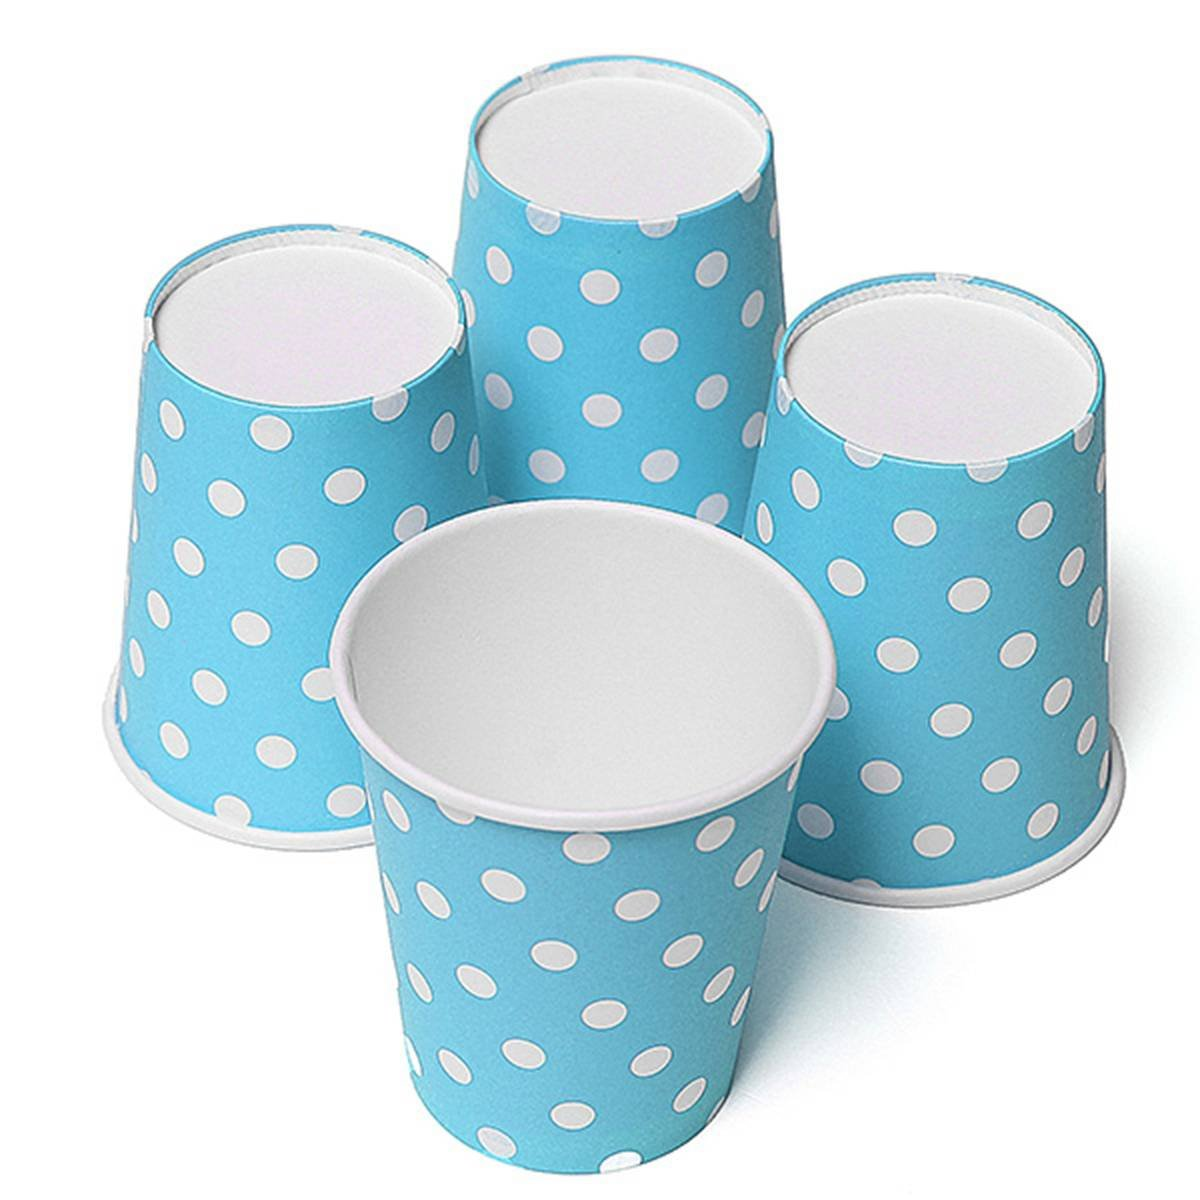 SZS Hot 50pcs Polka Dot Paper Paper Cups Case Disposable Tableware Wedding Birthday Decorations Blue